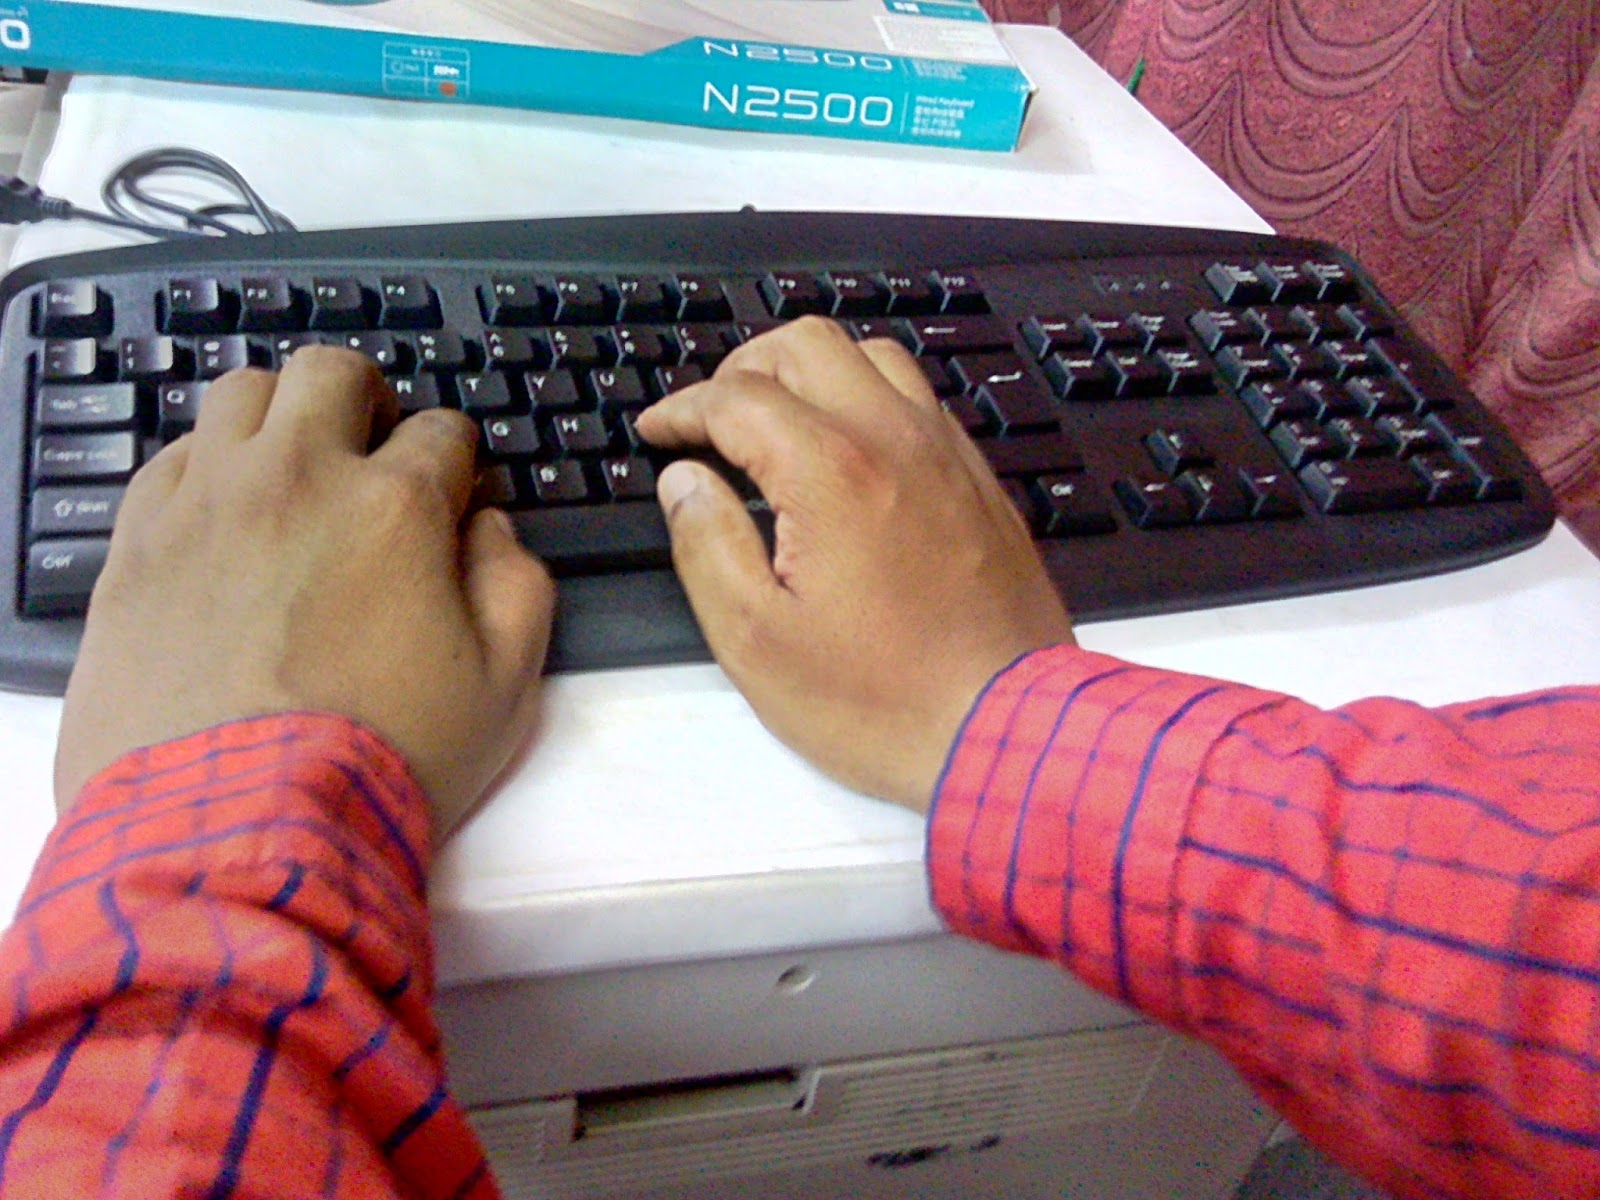 Rapoo N2500 Keyboard Price, Specification & Unboxing